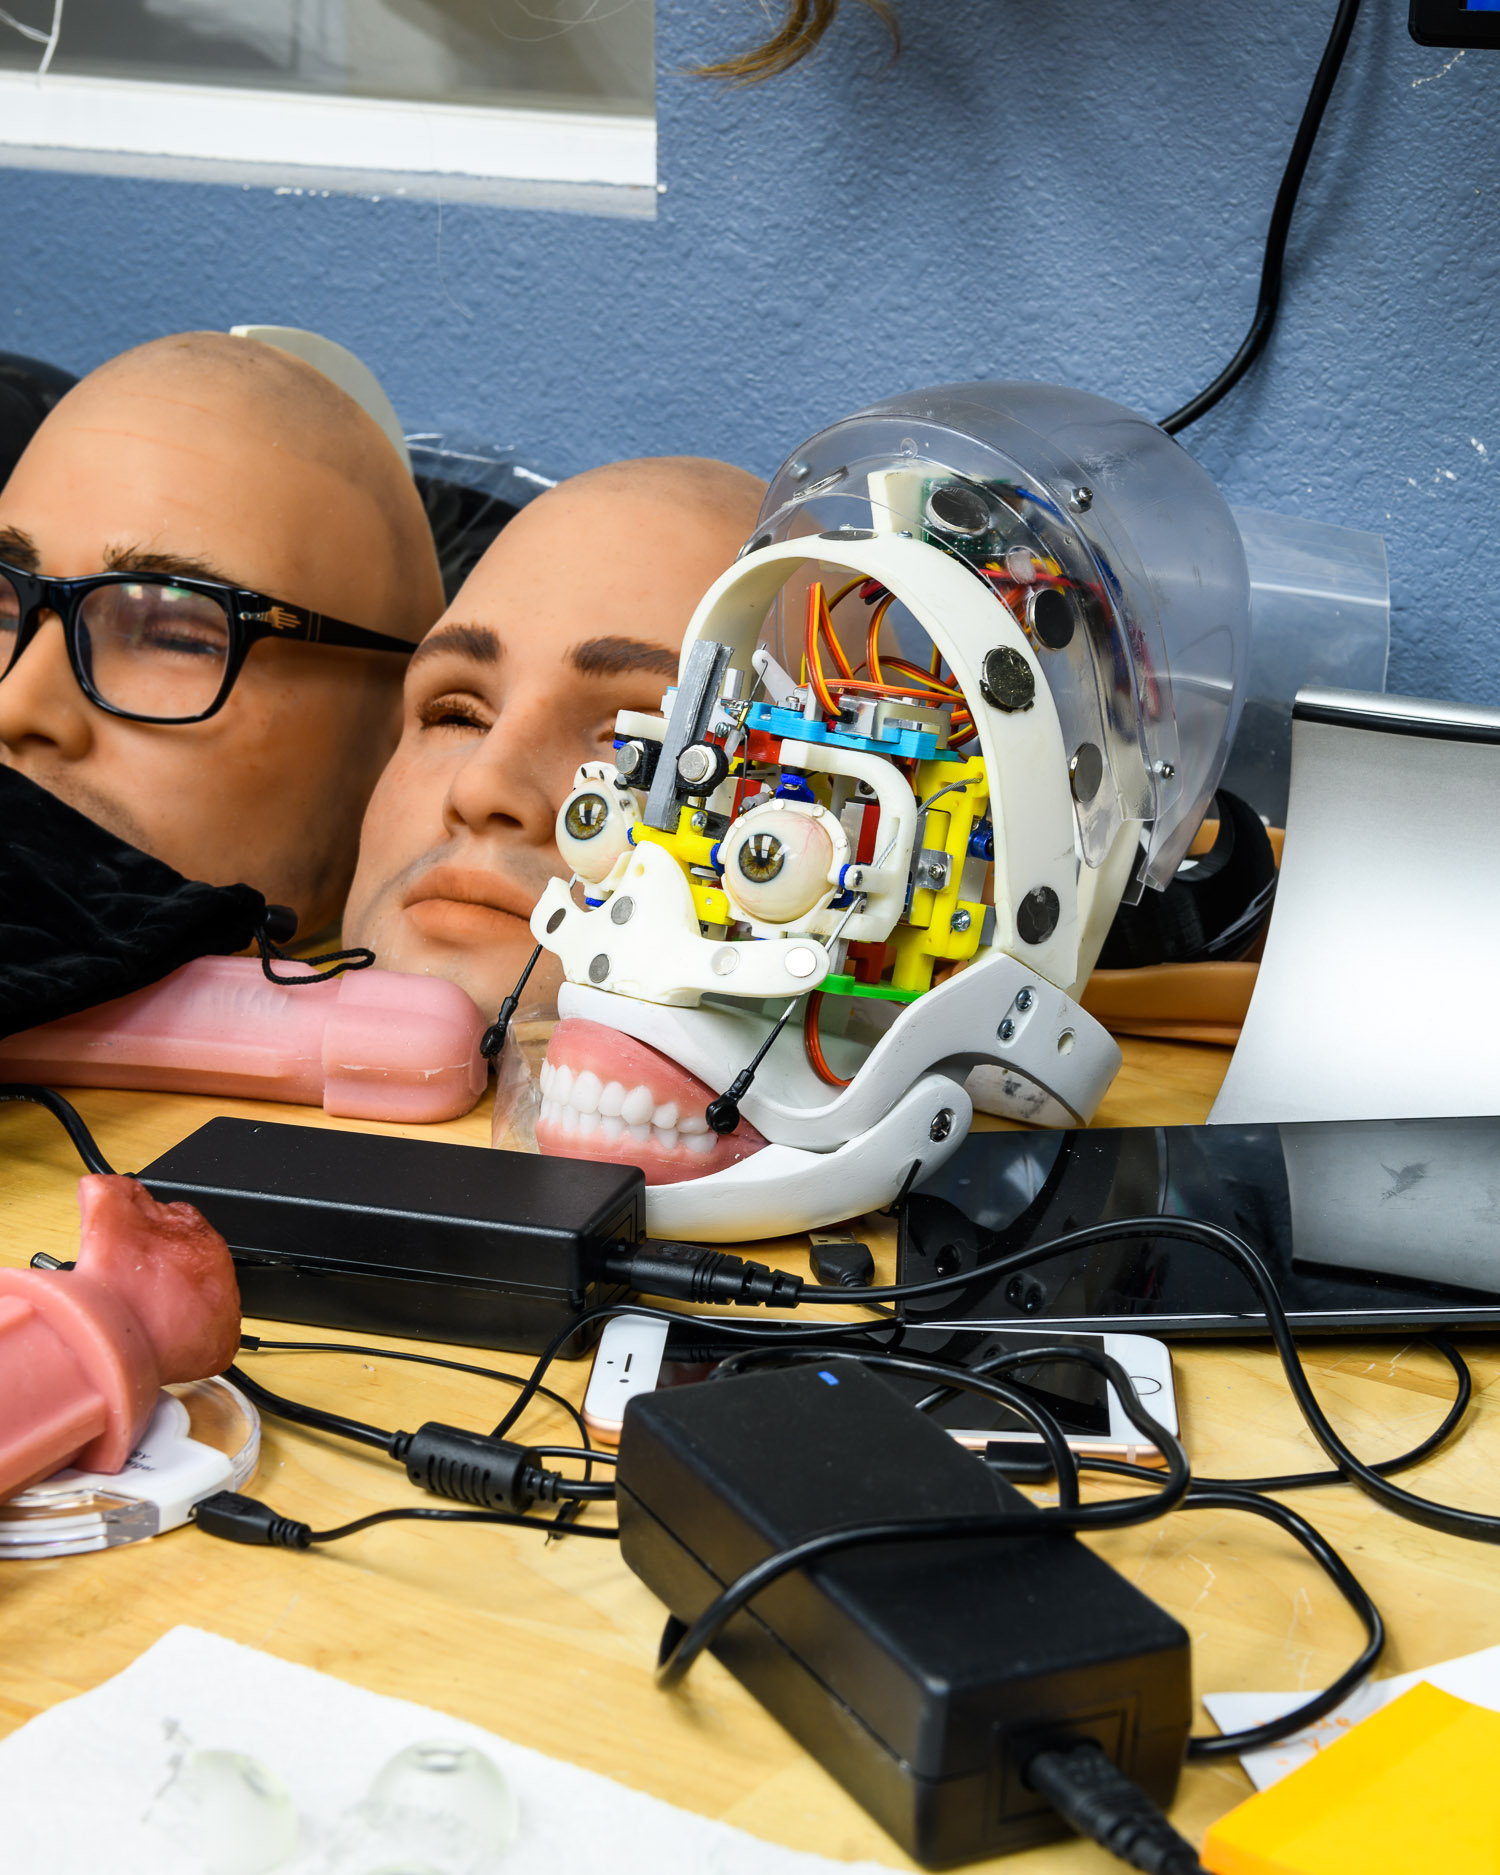 A robotic head at the RealDoll robot workshop in San Marcos, California.